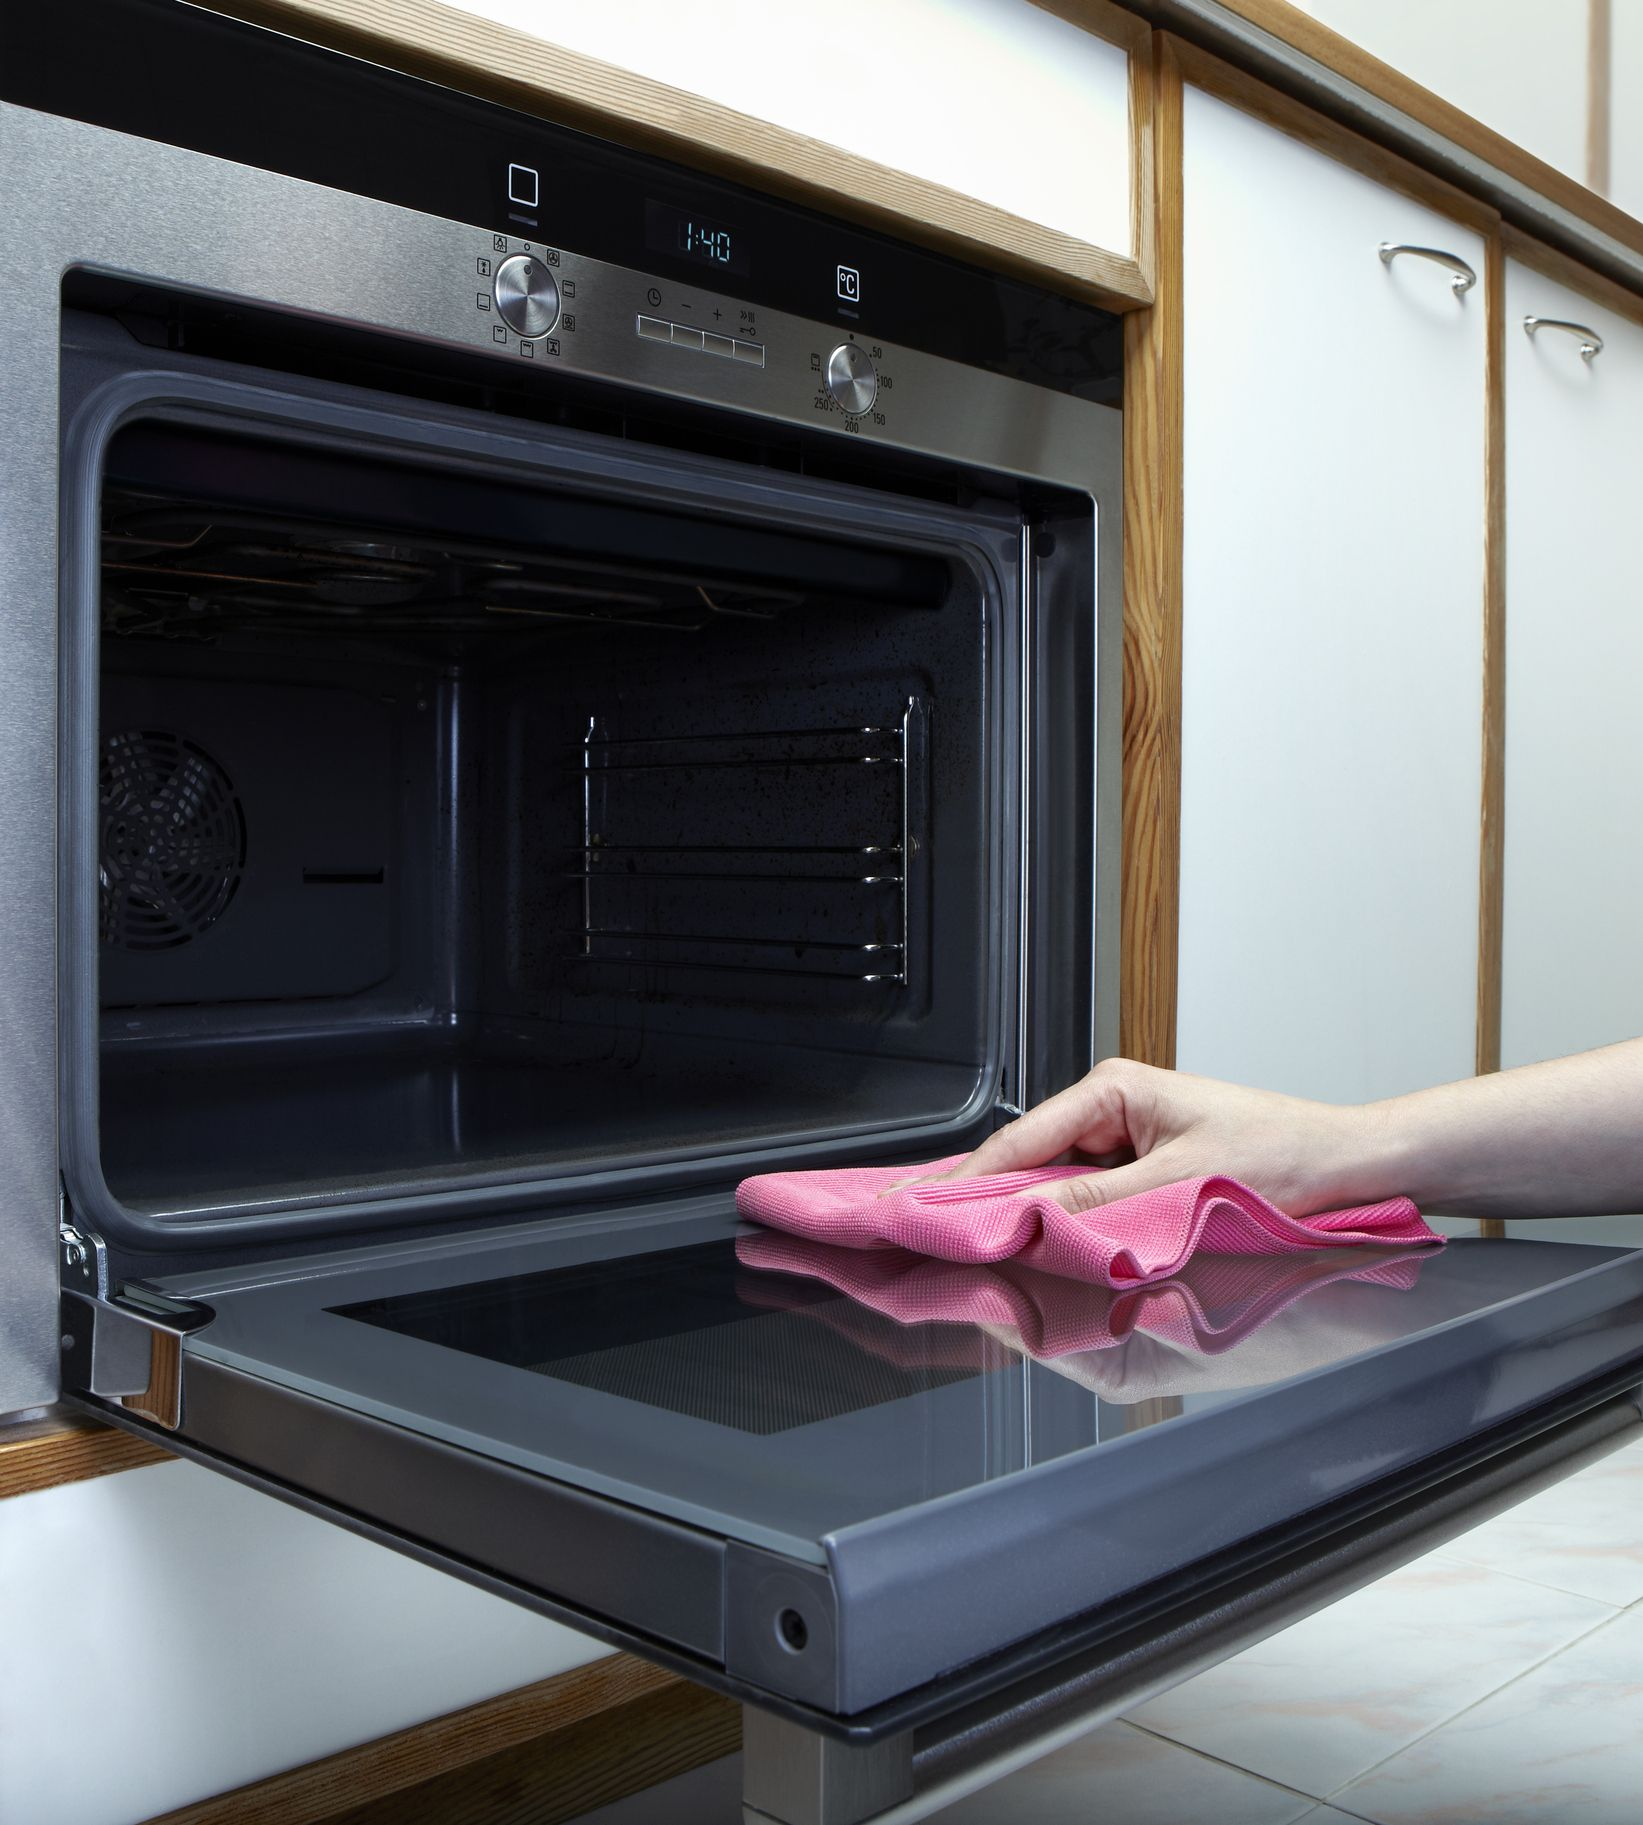 How To Clean An Oven Guide Best Way To Clean An Oven By